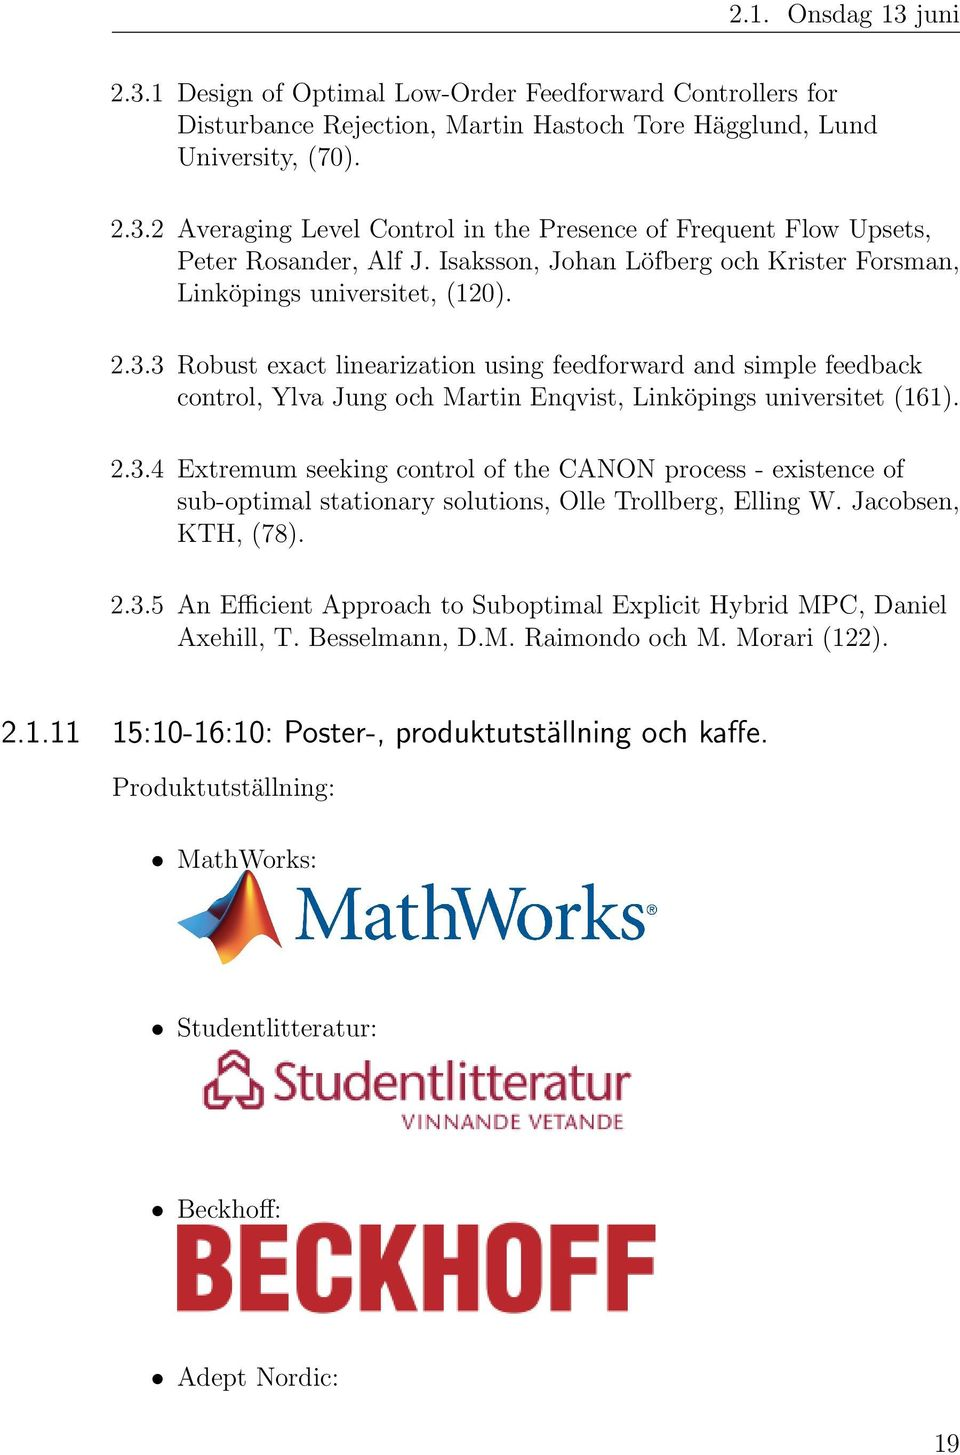 3 Robust exact linearization using feedforward and simple feedback control, Ylva Jung och Martin Enqvist, Linköpings universitet (161). 2.3.4 Extremum seeking control of the CANON process - existence of sub-optimal stationary solutions, Olle Trollberg, Elling W.